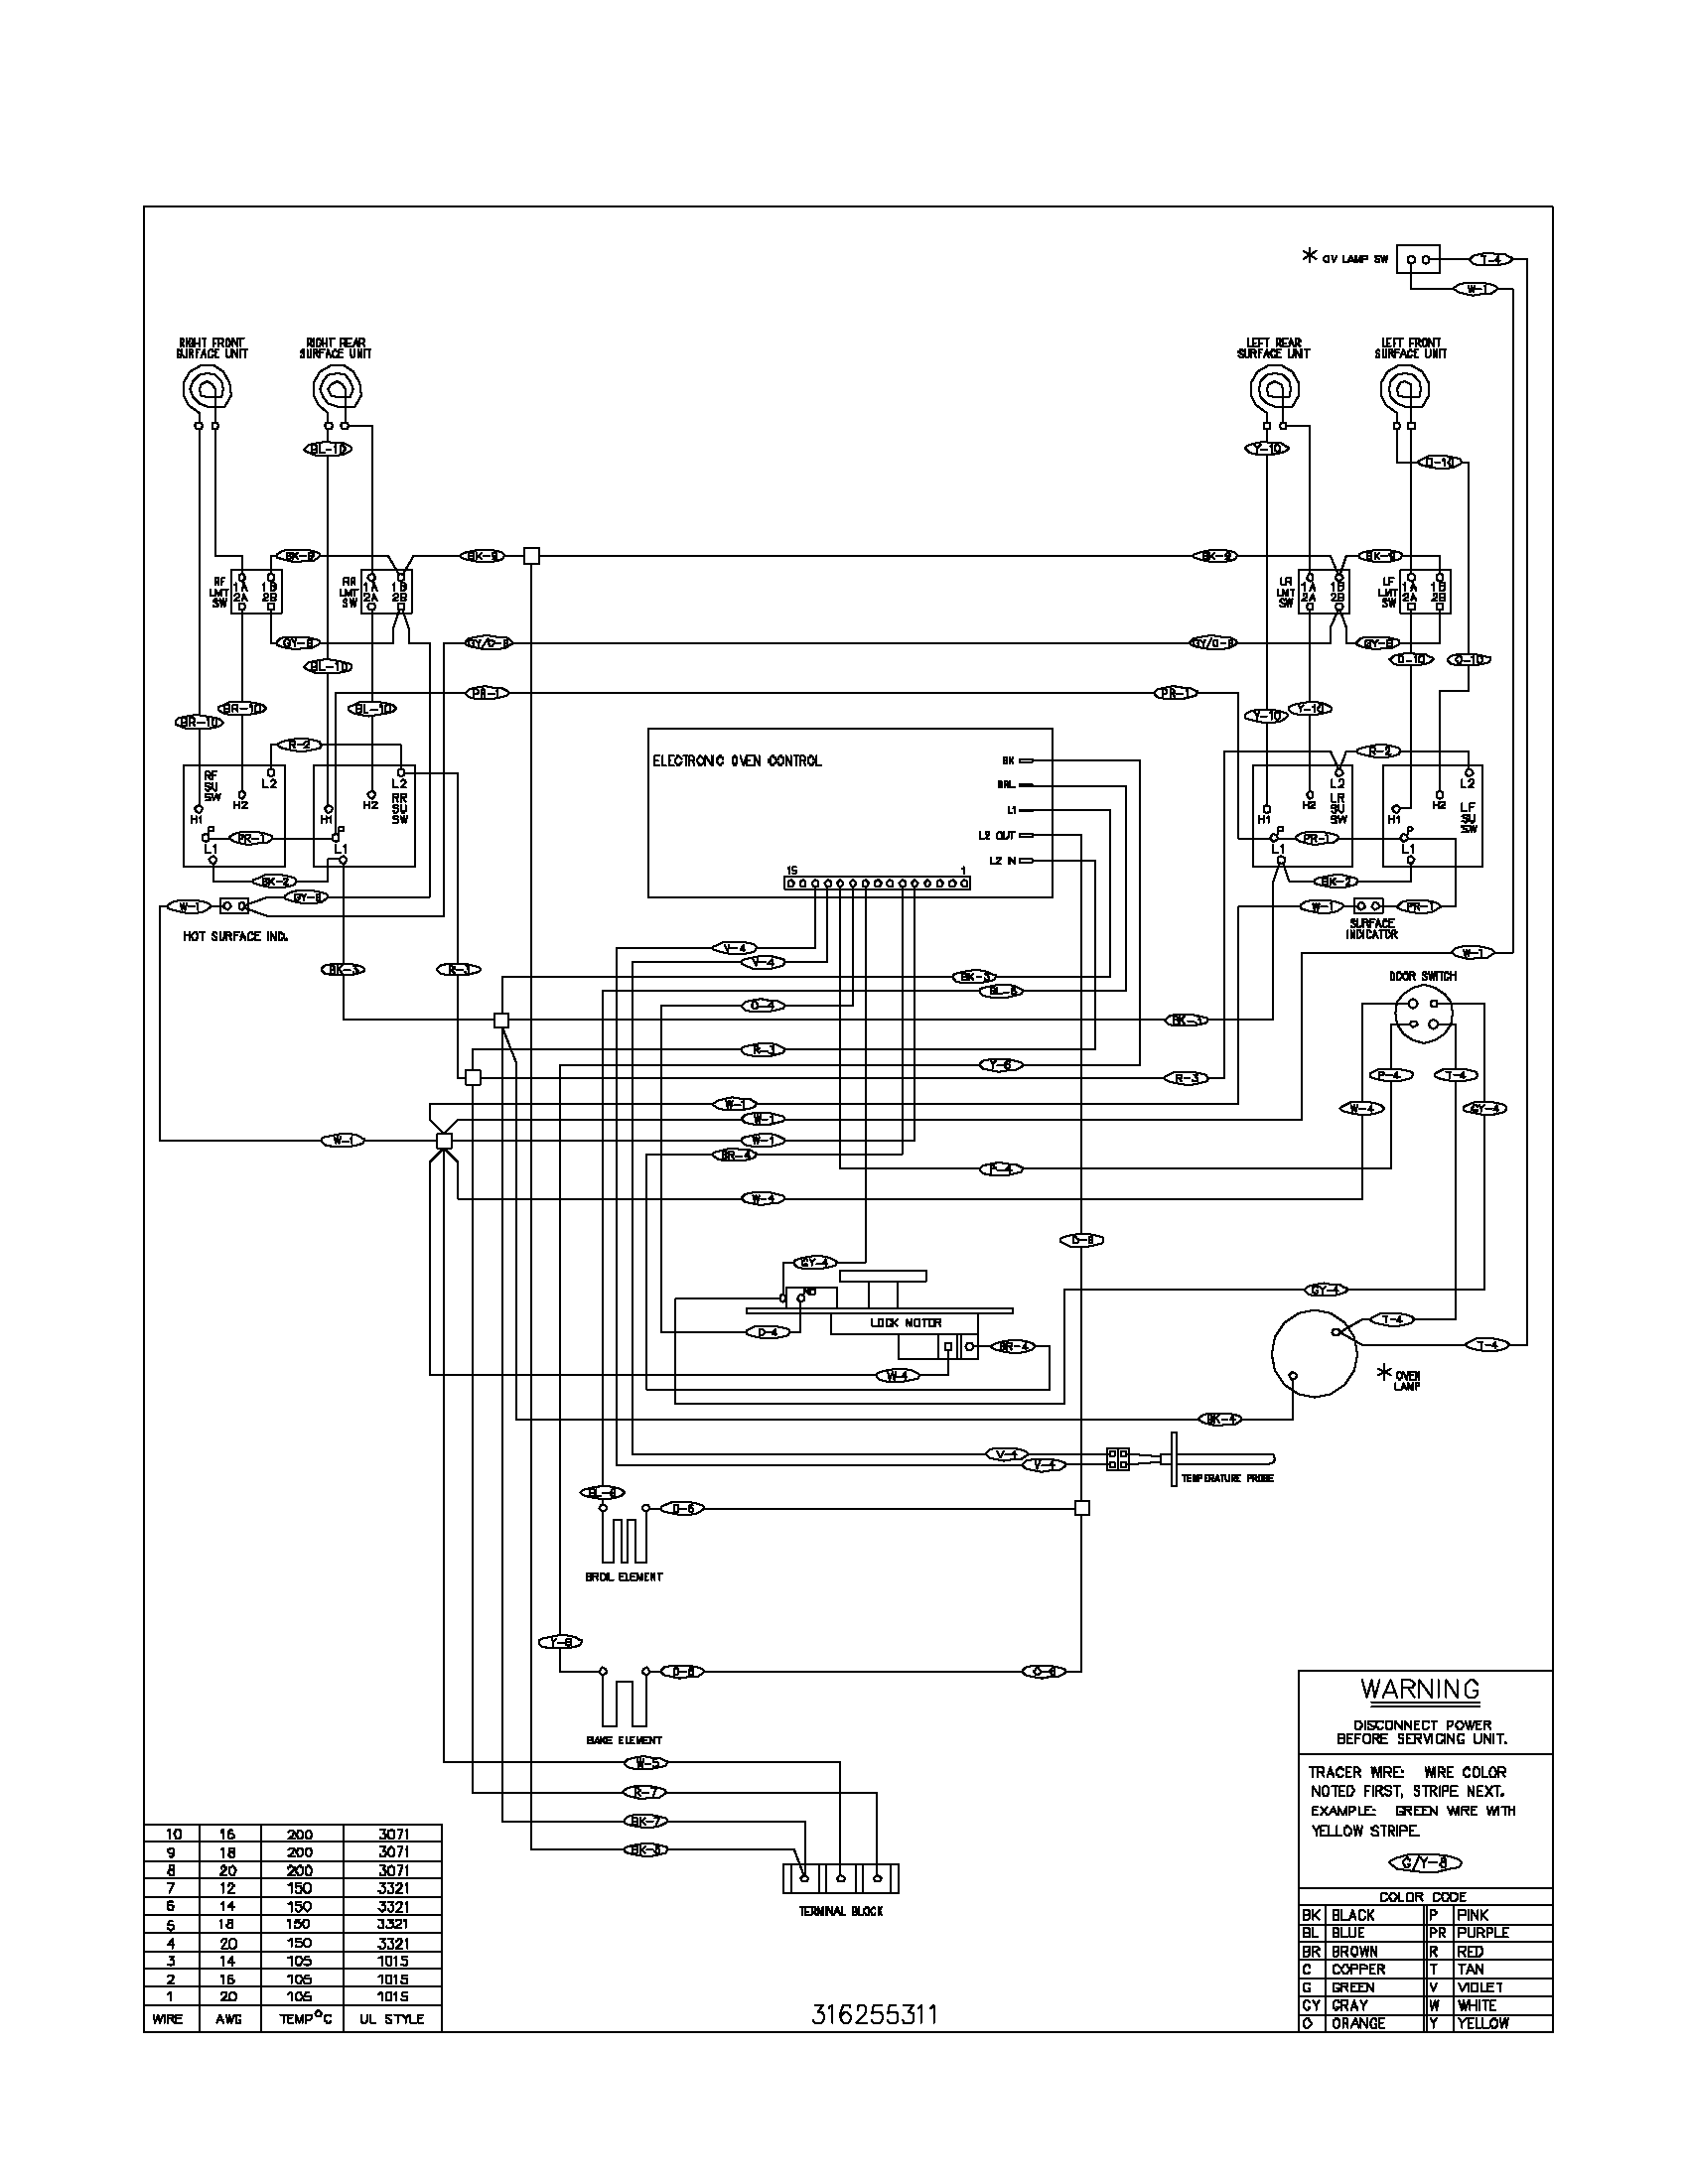 wiring diagrams and schematics appliantology readingrat net Electric Oven Wiring ge stove wiring diagram wiring diagram and schematic design, wiring diagram electric oven wiring